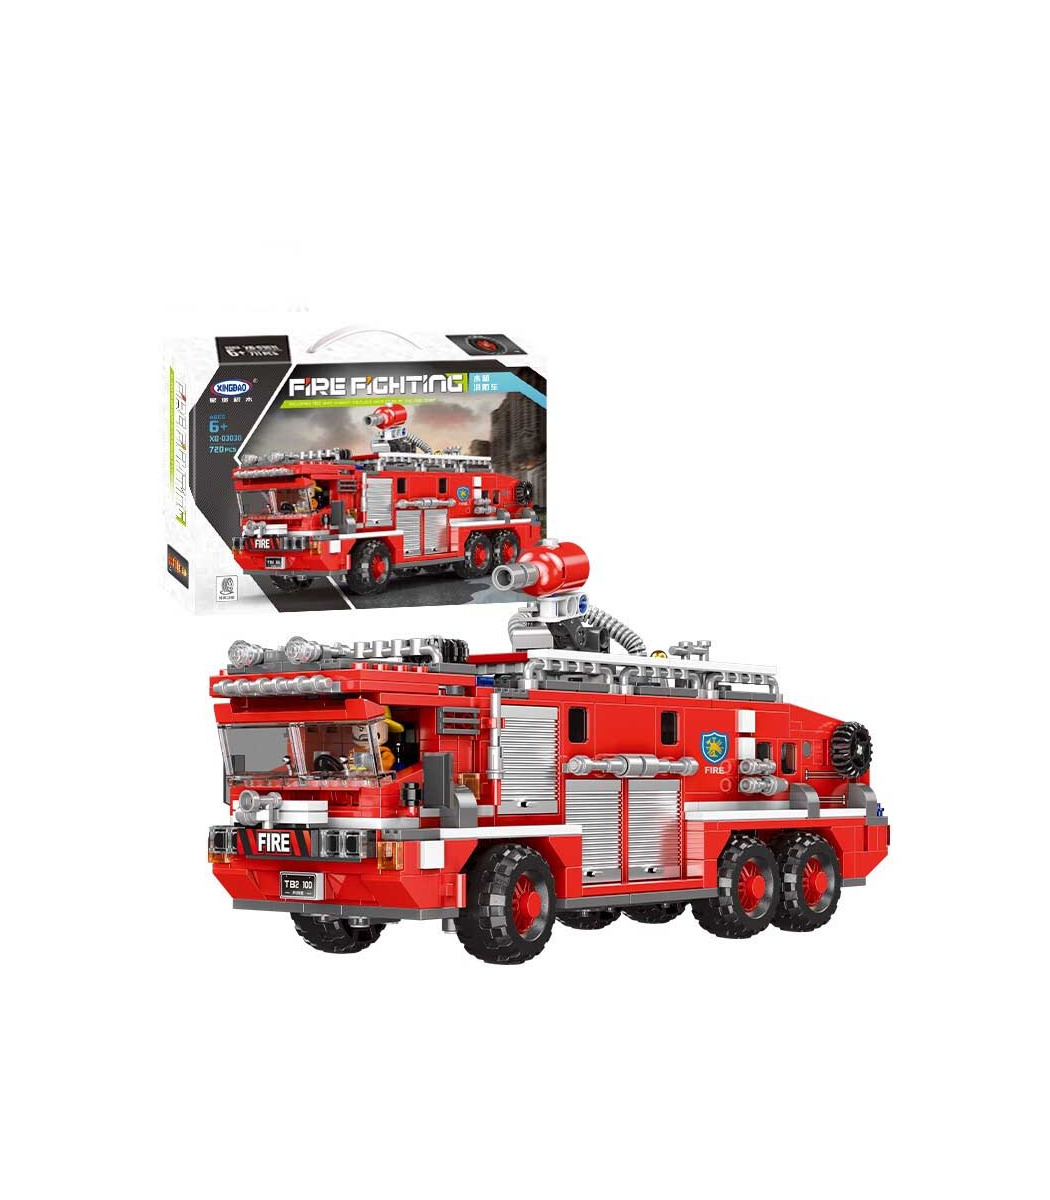 XINGBAO 03030 Fire Fighting Water Tank Fire Truck Building Bricks Toy Set, (MOC Custom Brick Sets, Compatible Building Blocks Toys Ideas, Building Bricks Meaning)